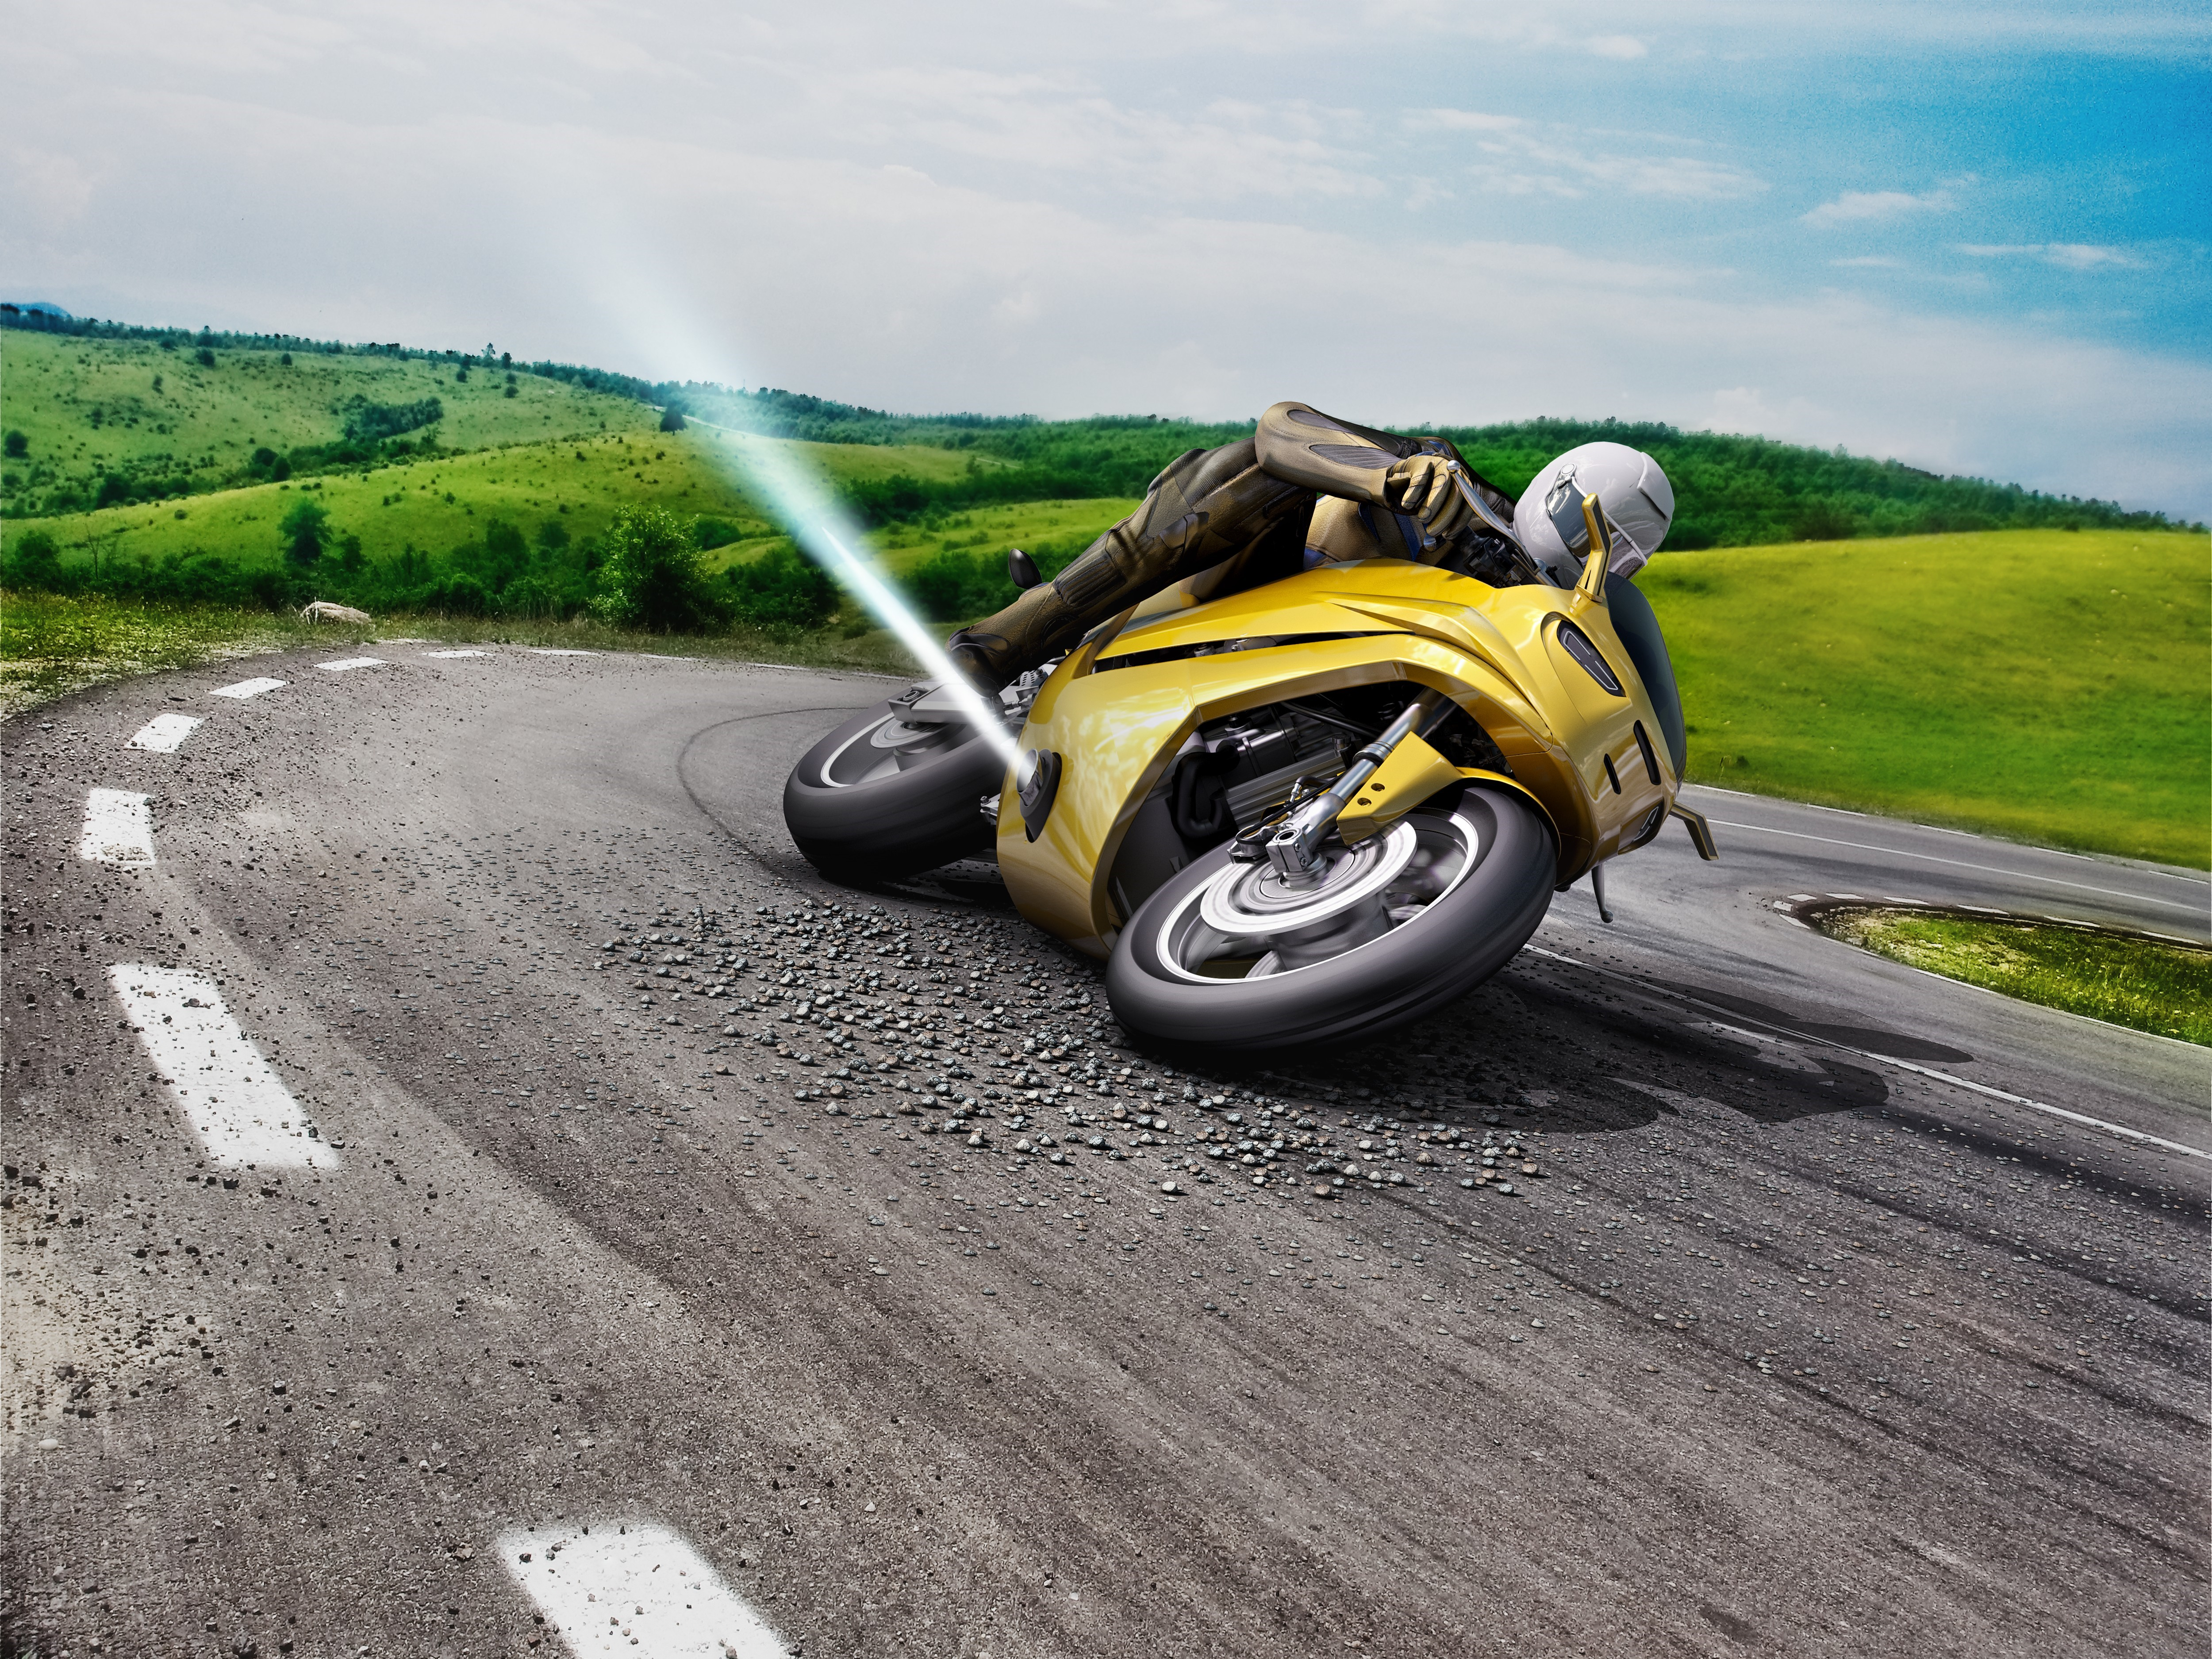 MSC (motorcycle stability control)